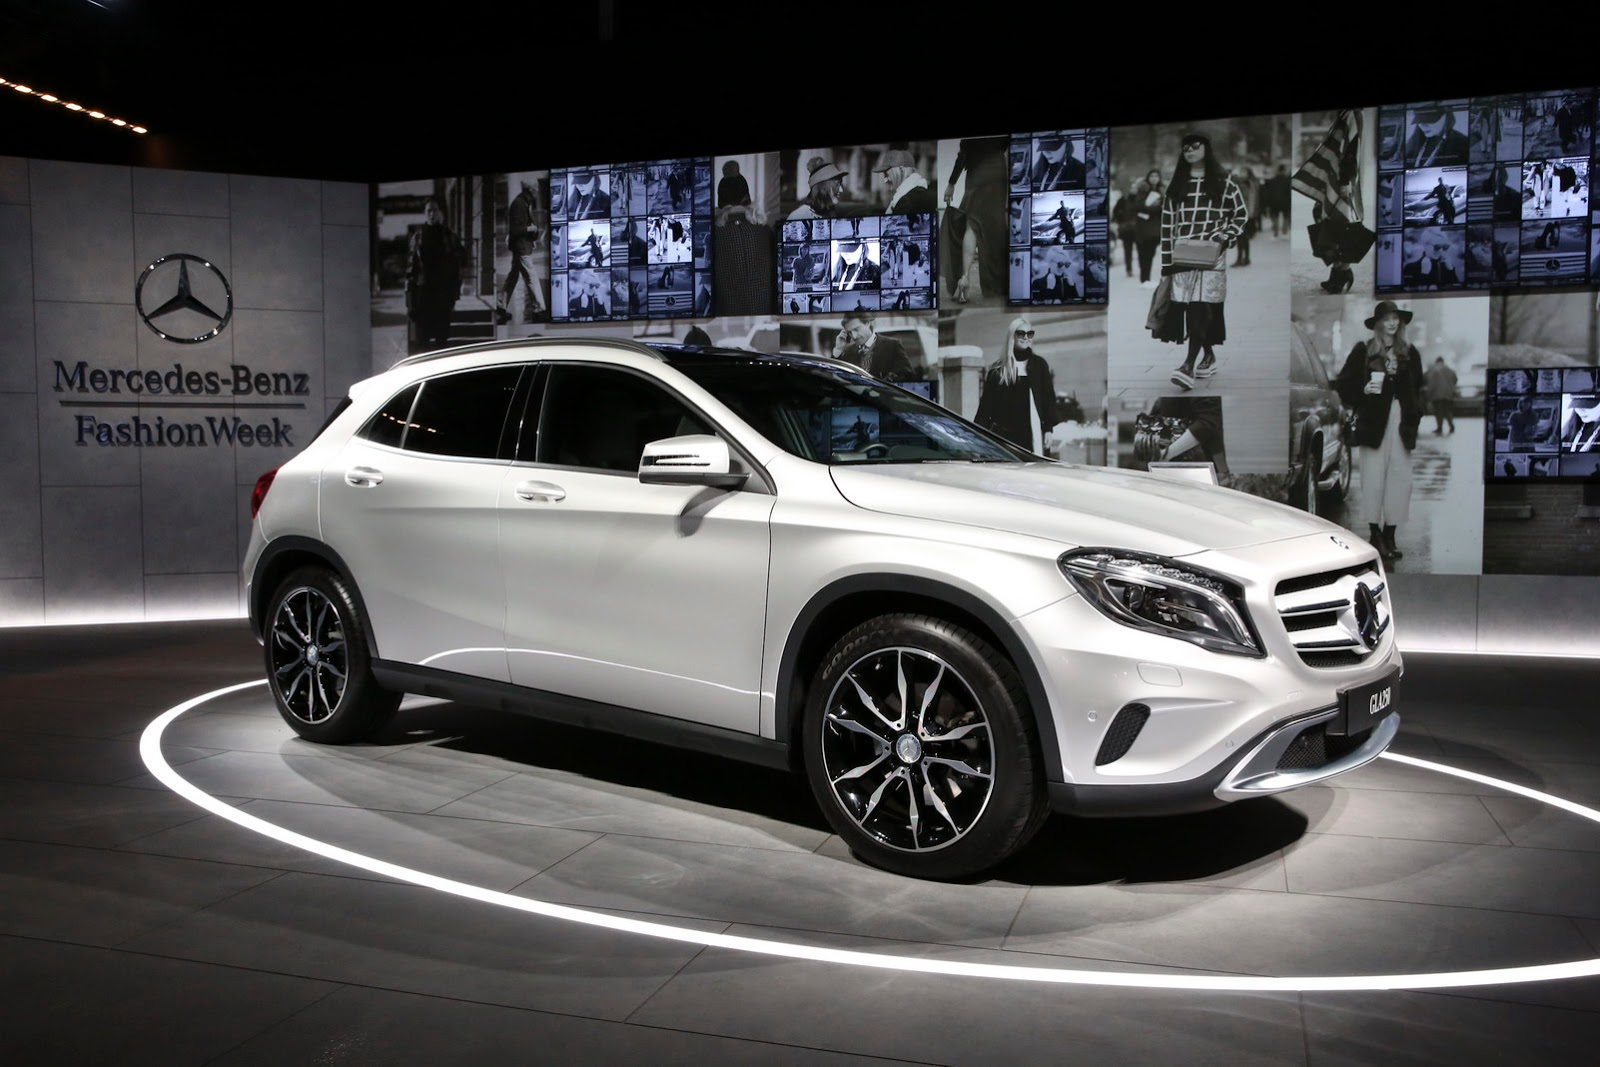 mercedes gla suv now available in nigeria - staniswheels blog - we